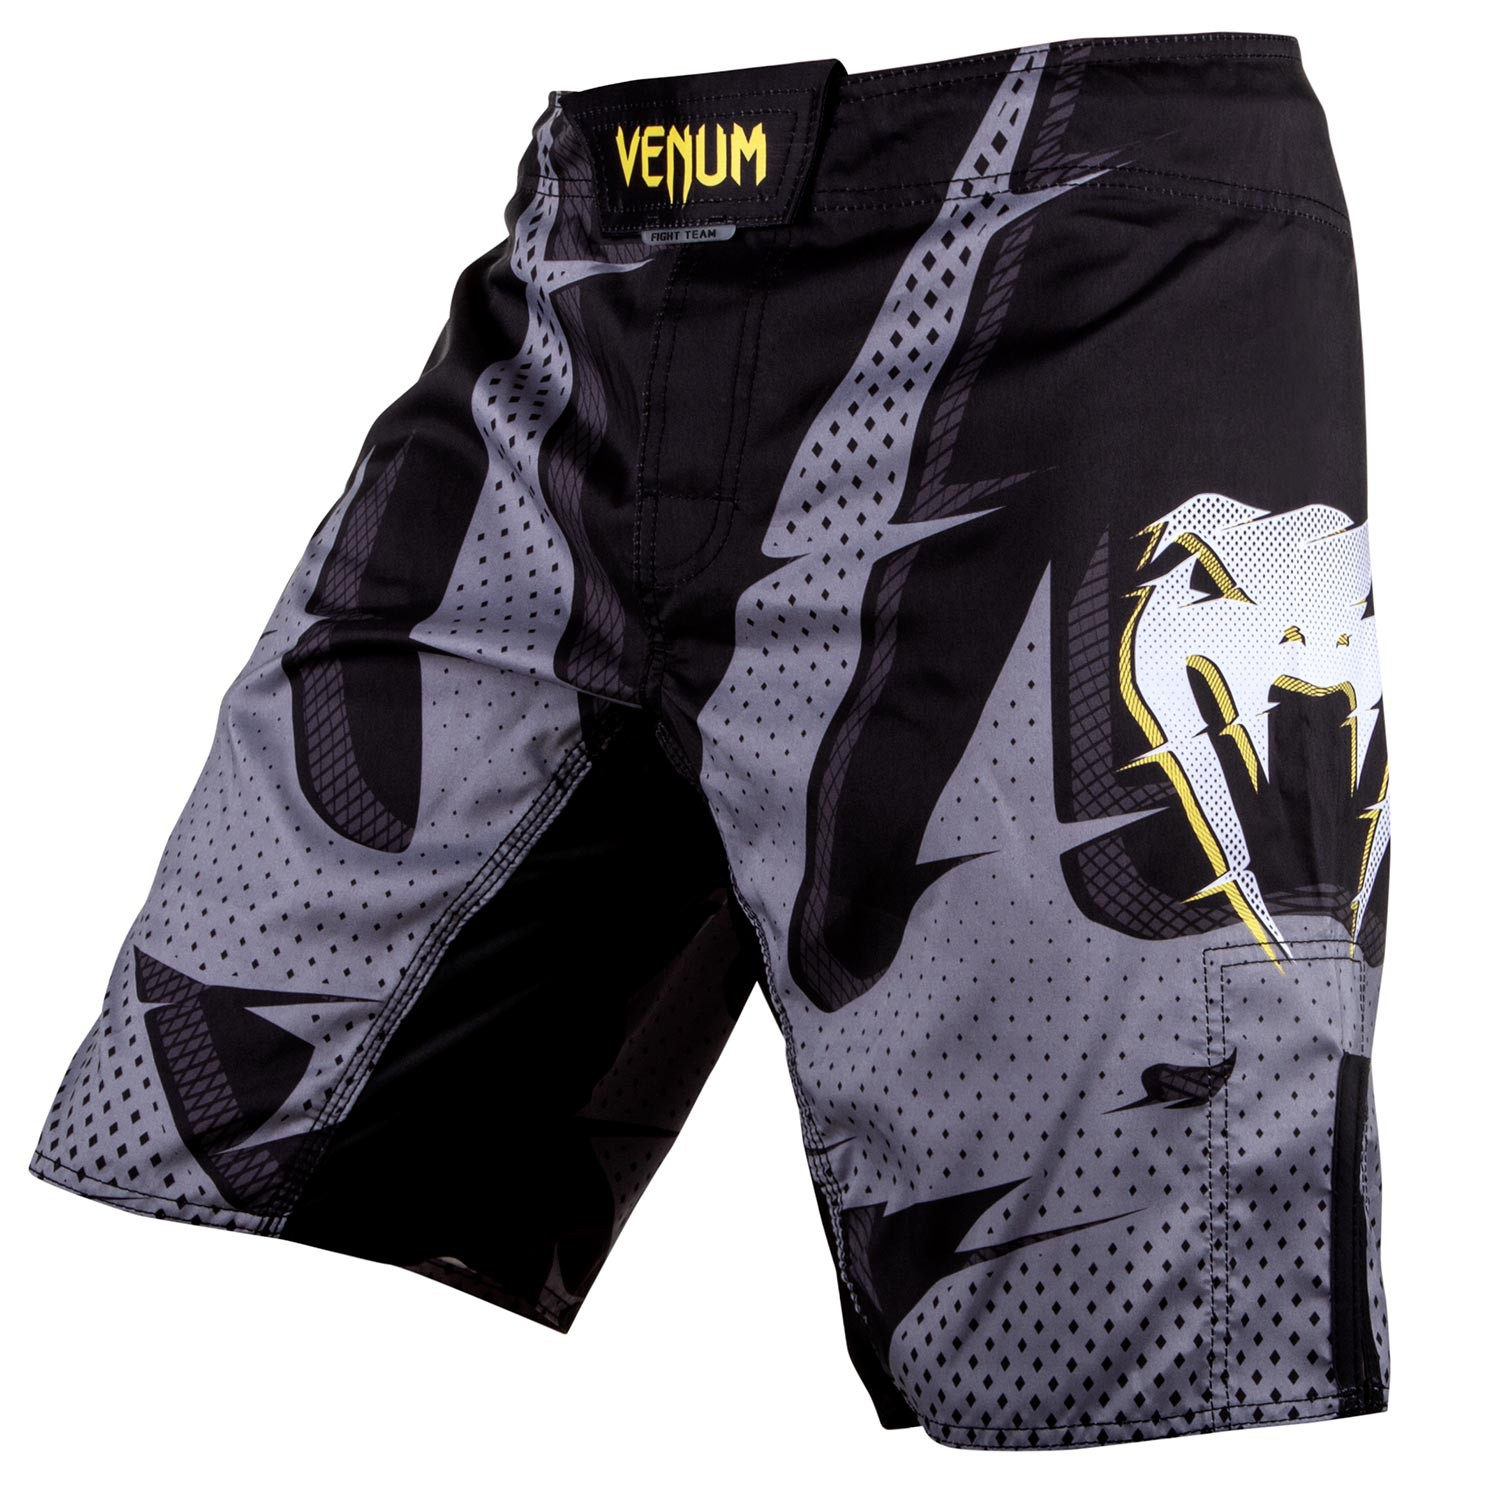 Купить Шорты Venum Interference Fightshorts - Black/Grey, 4403_bk_gy